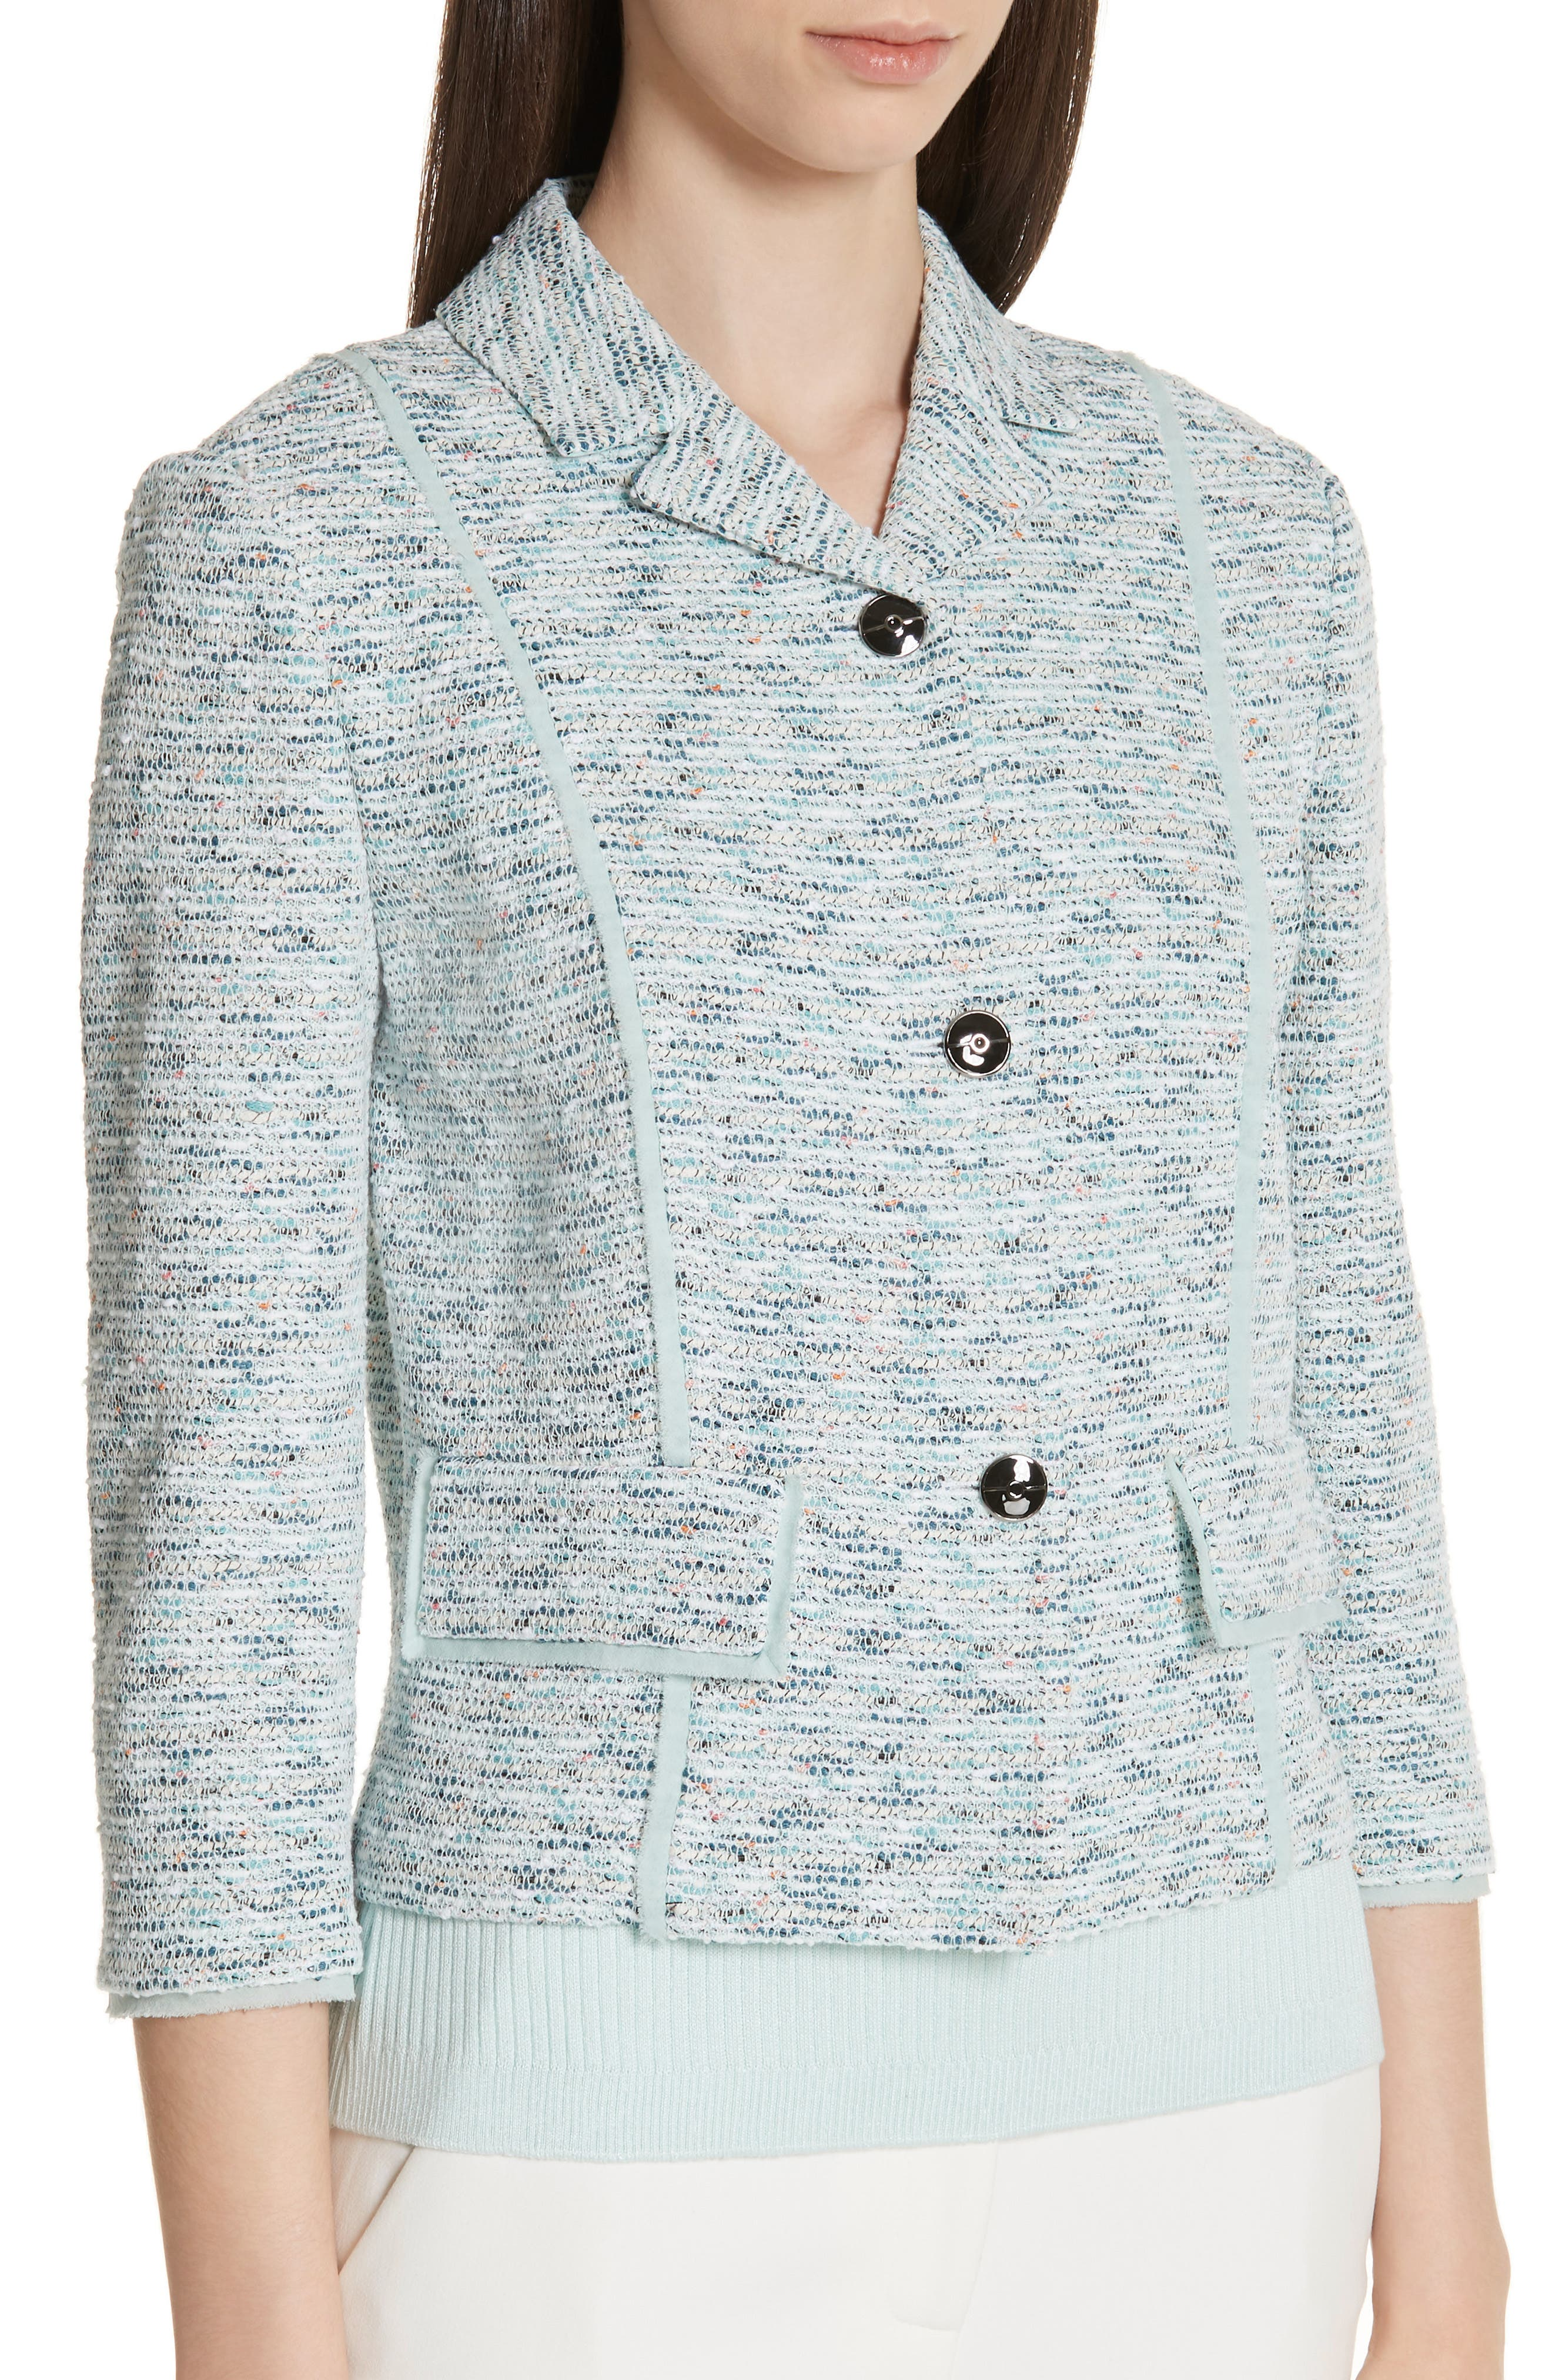 ST. JOHN COLLECTION,                             Alessandra Knit Jacket,                             Alternate thumbnail 4, color,                             OPAL MULTI